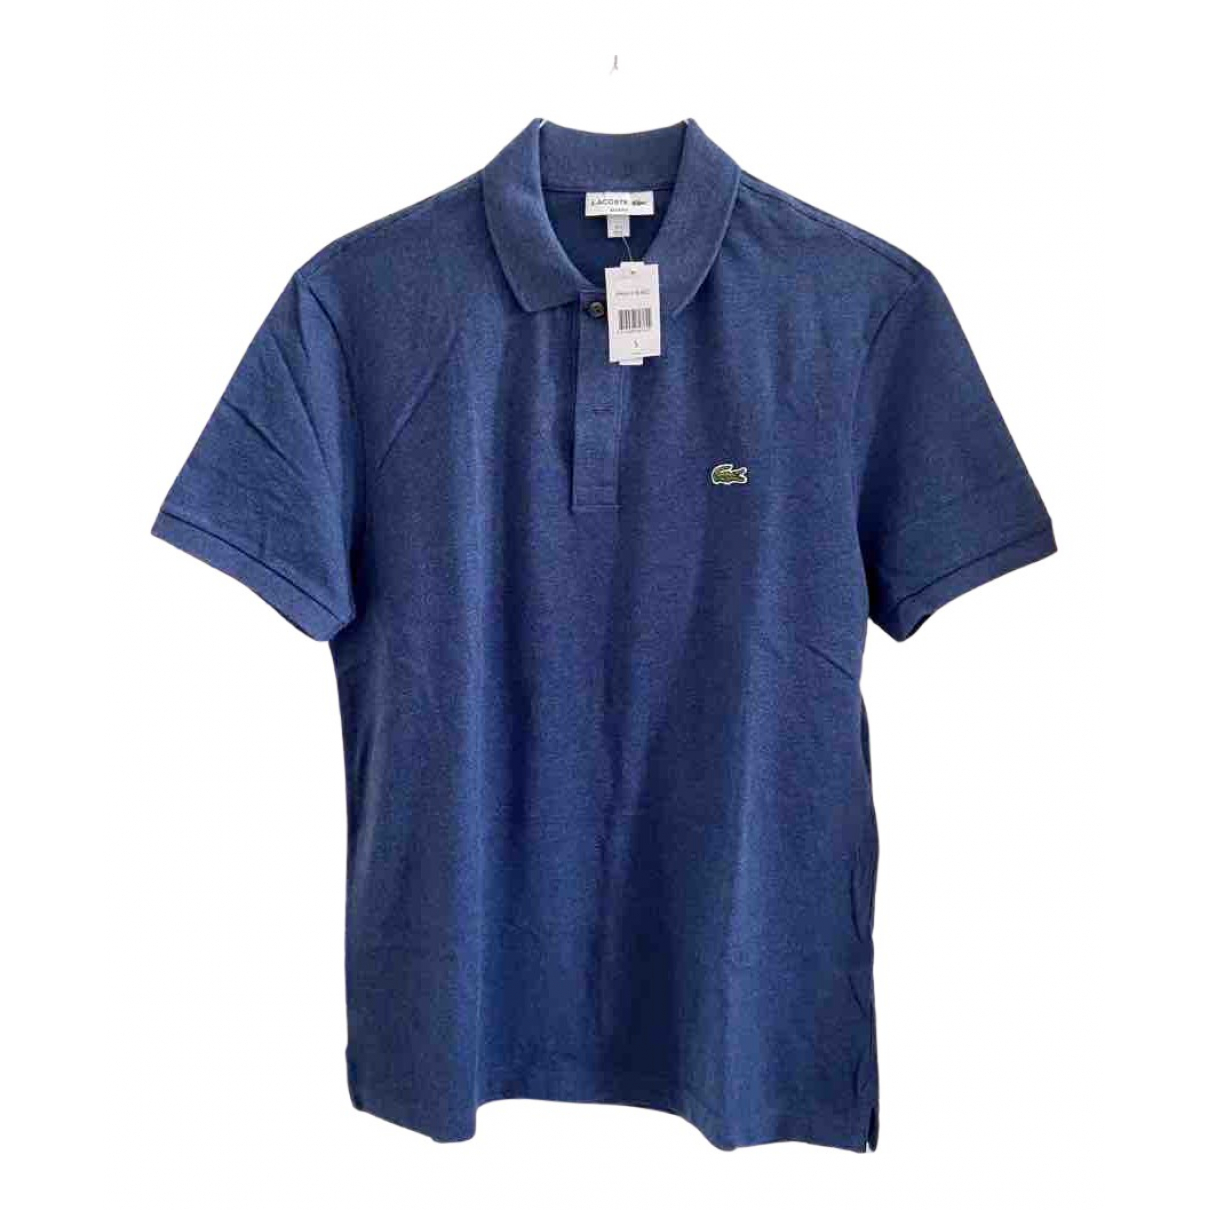 Lacoste N Blue Cotton Polo shirts for Men 5 0 - 6